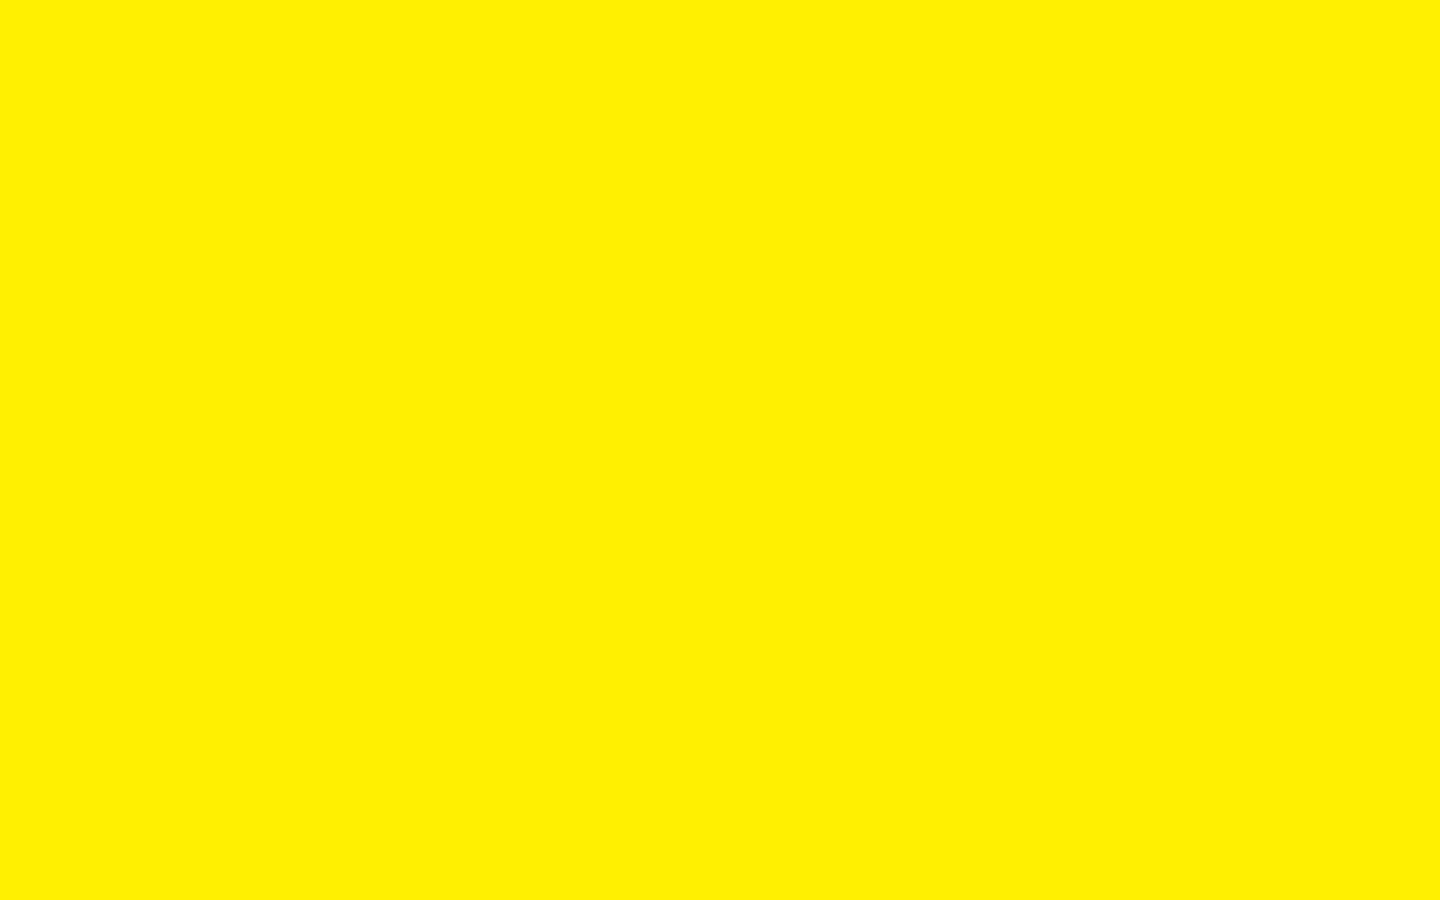 1440x900 Canary Yellow Solid Color Background